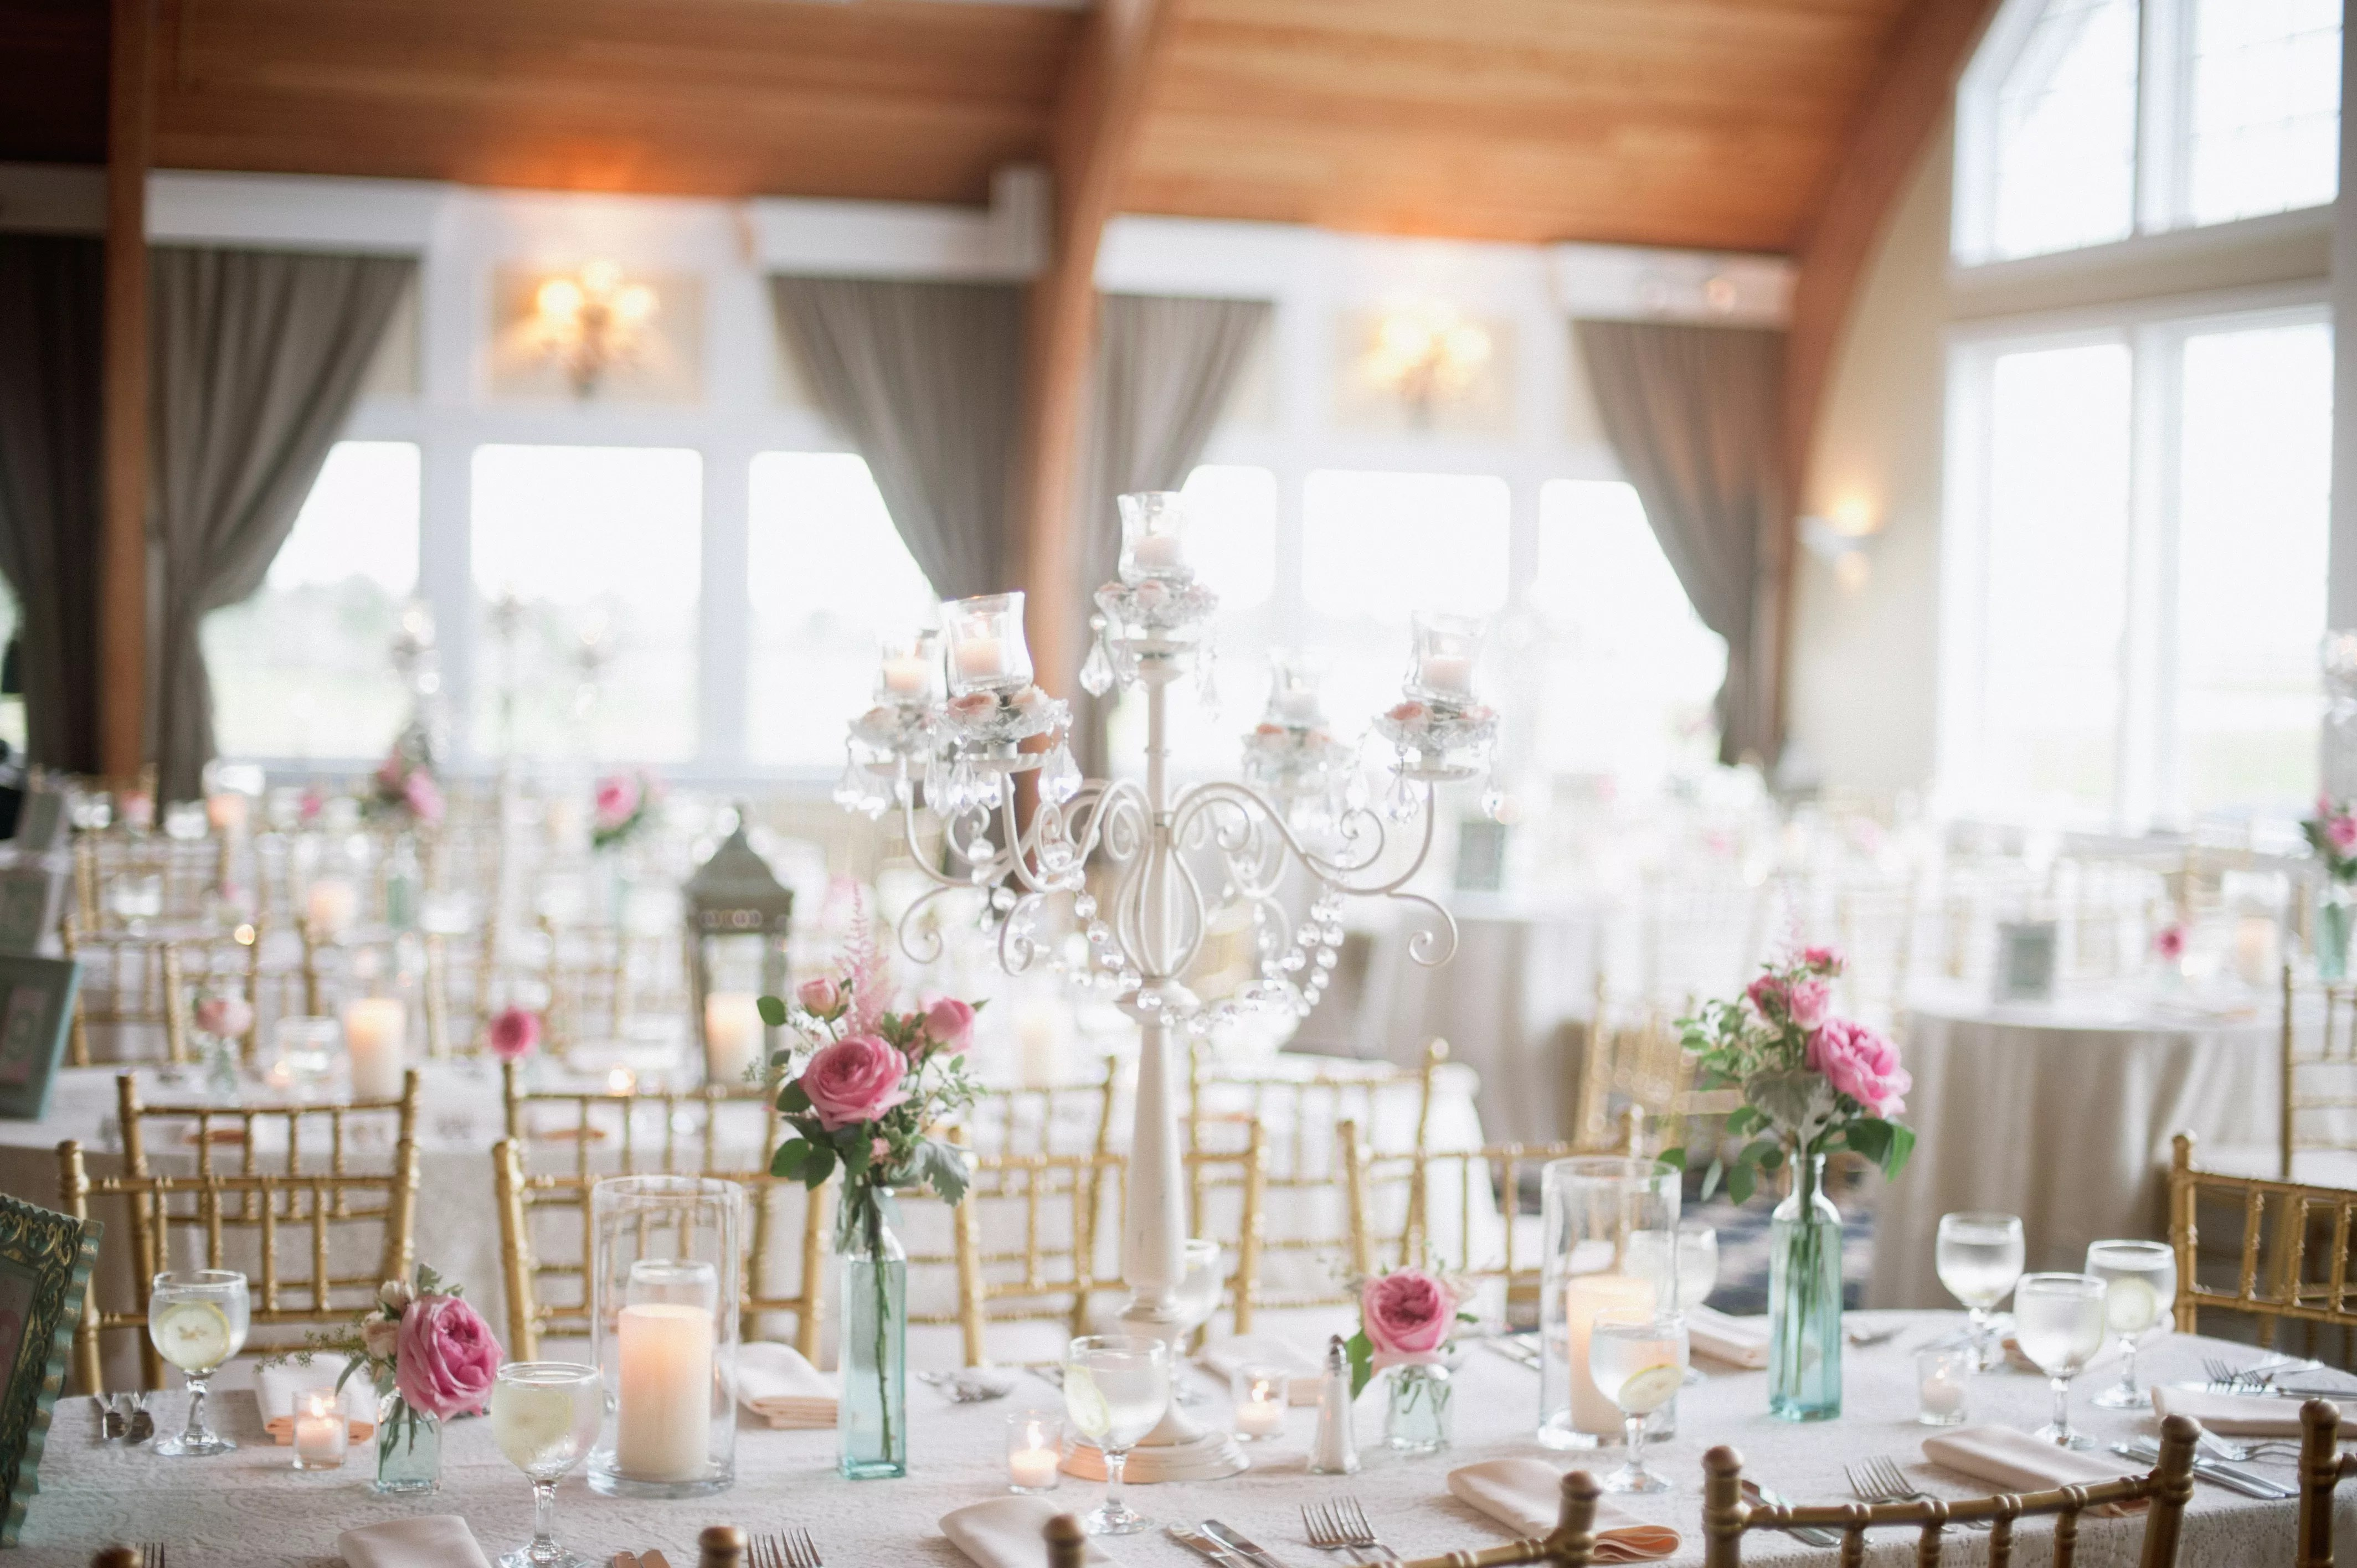 Candelabra and Bud Vase Centerpieces